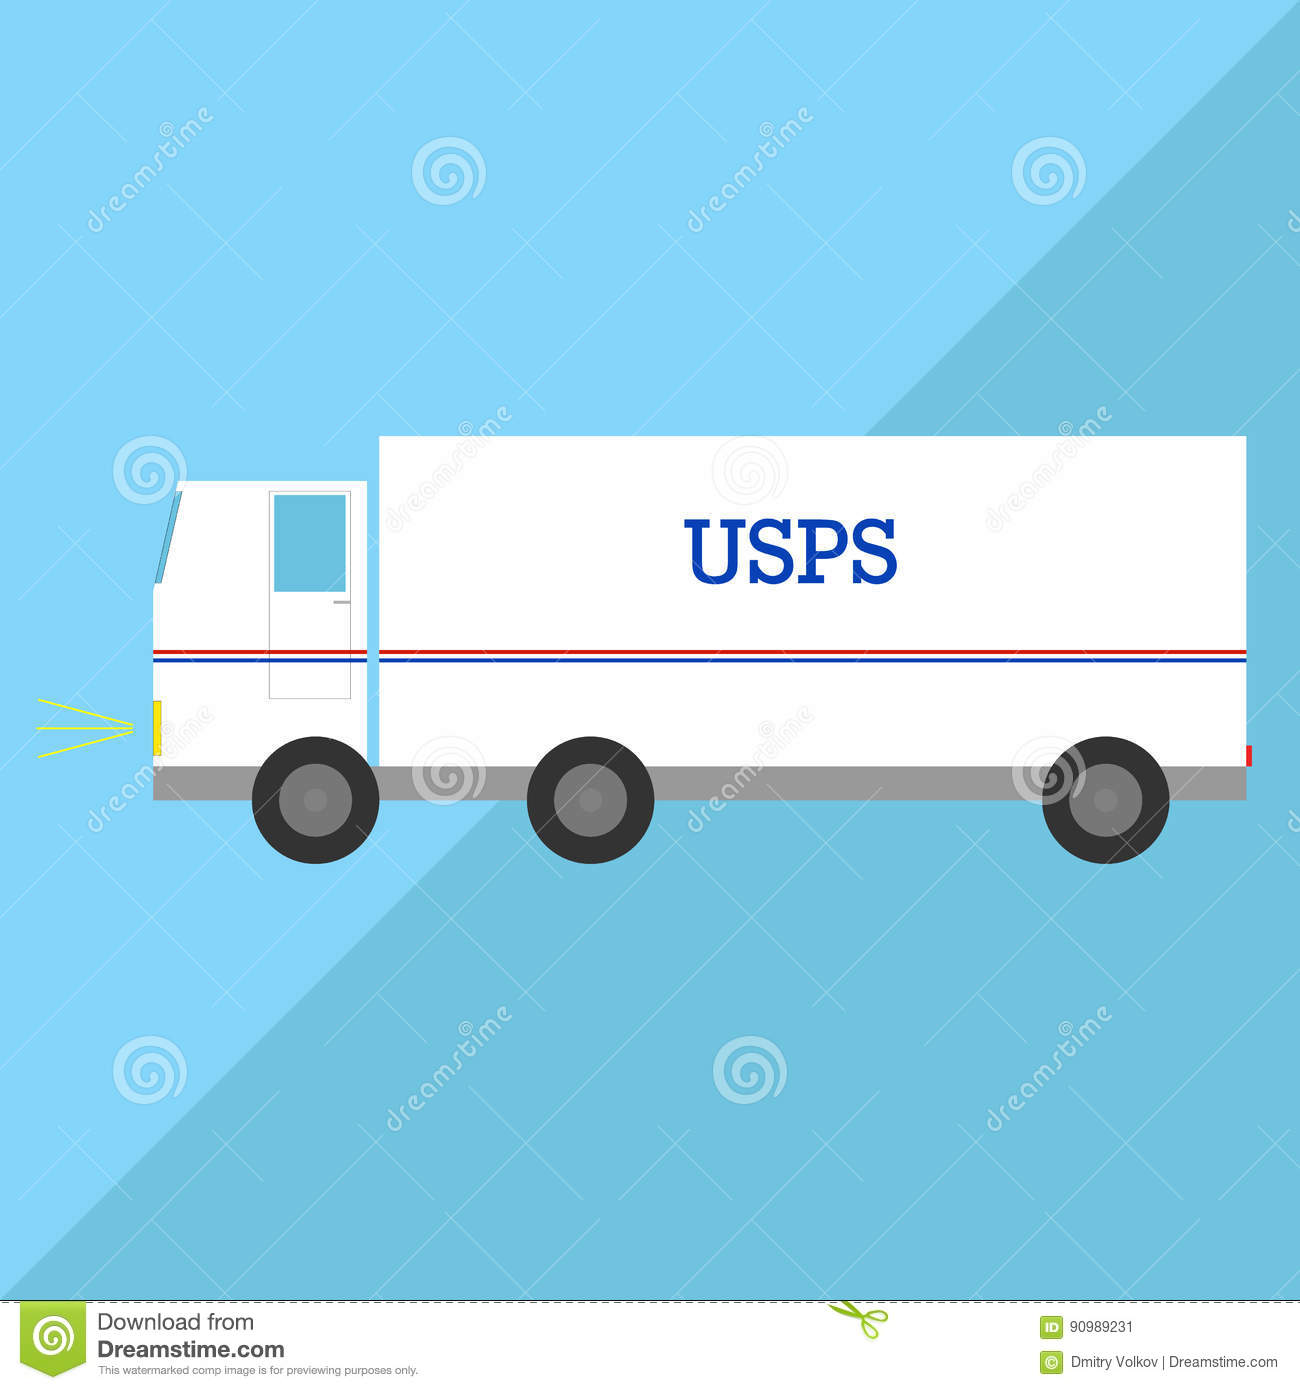 Usps Cartoons, Illustrations & Vector Stock Images - 46 Pictures to download from ...  Usps Cartoons, ...